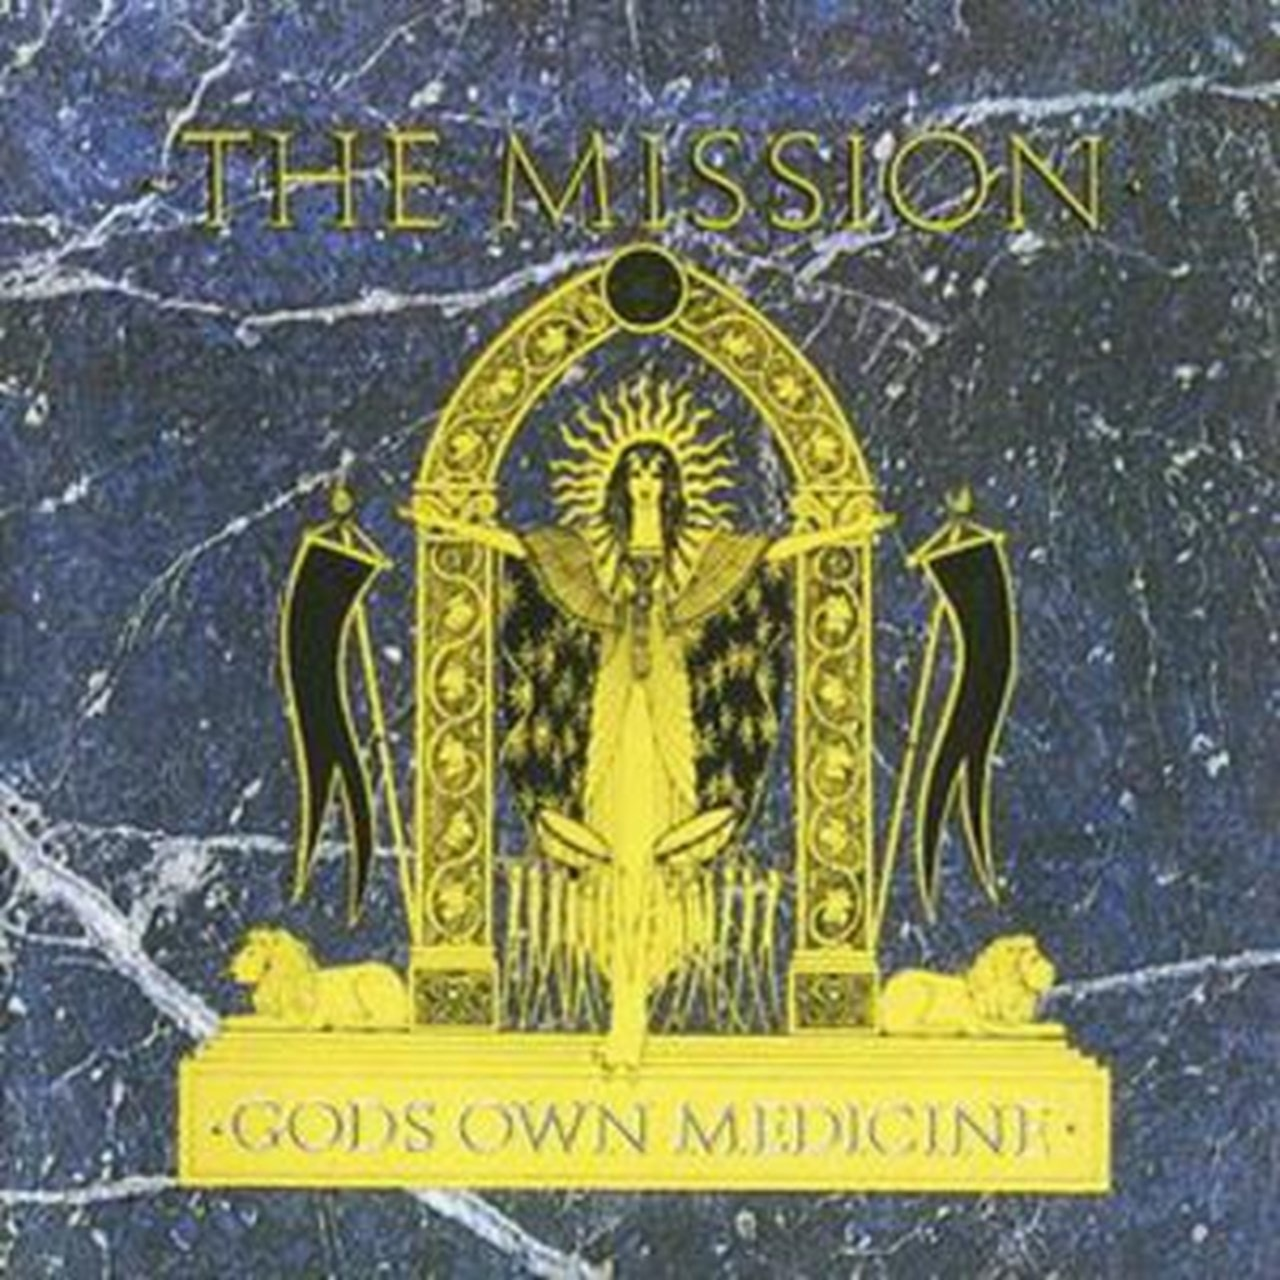 God's Own Medicine [bonus Tracks] - 1